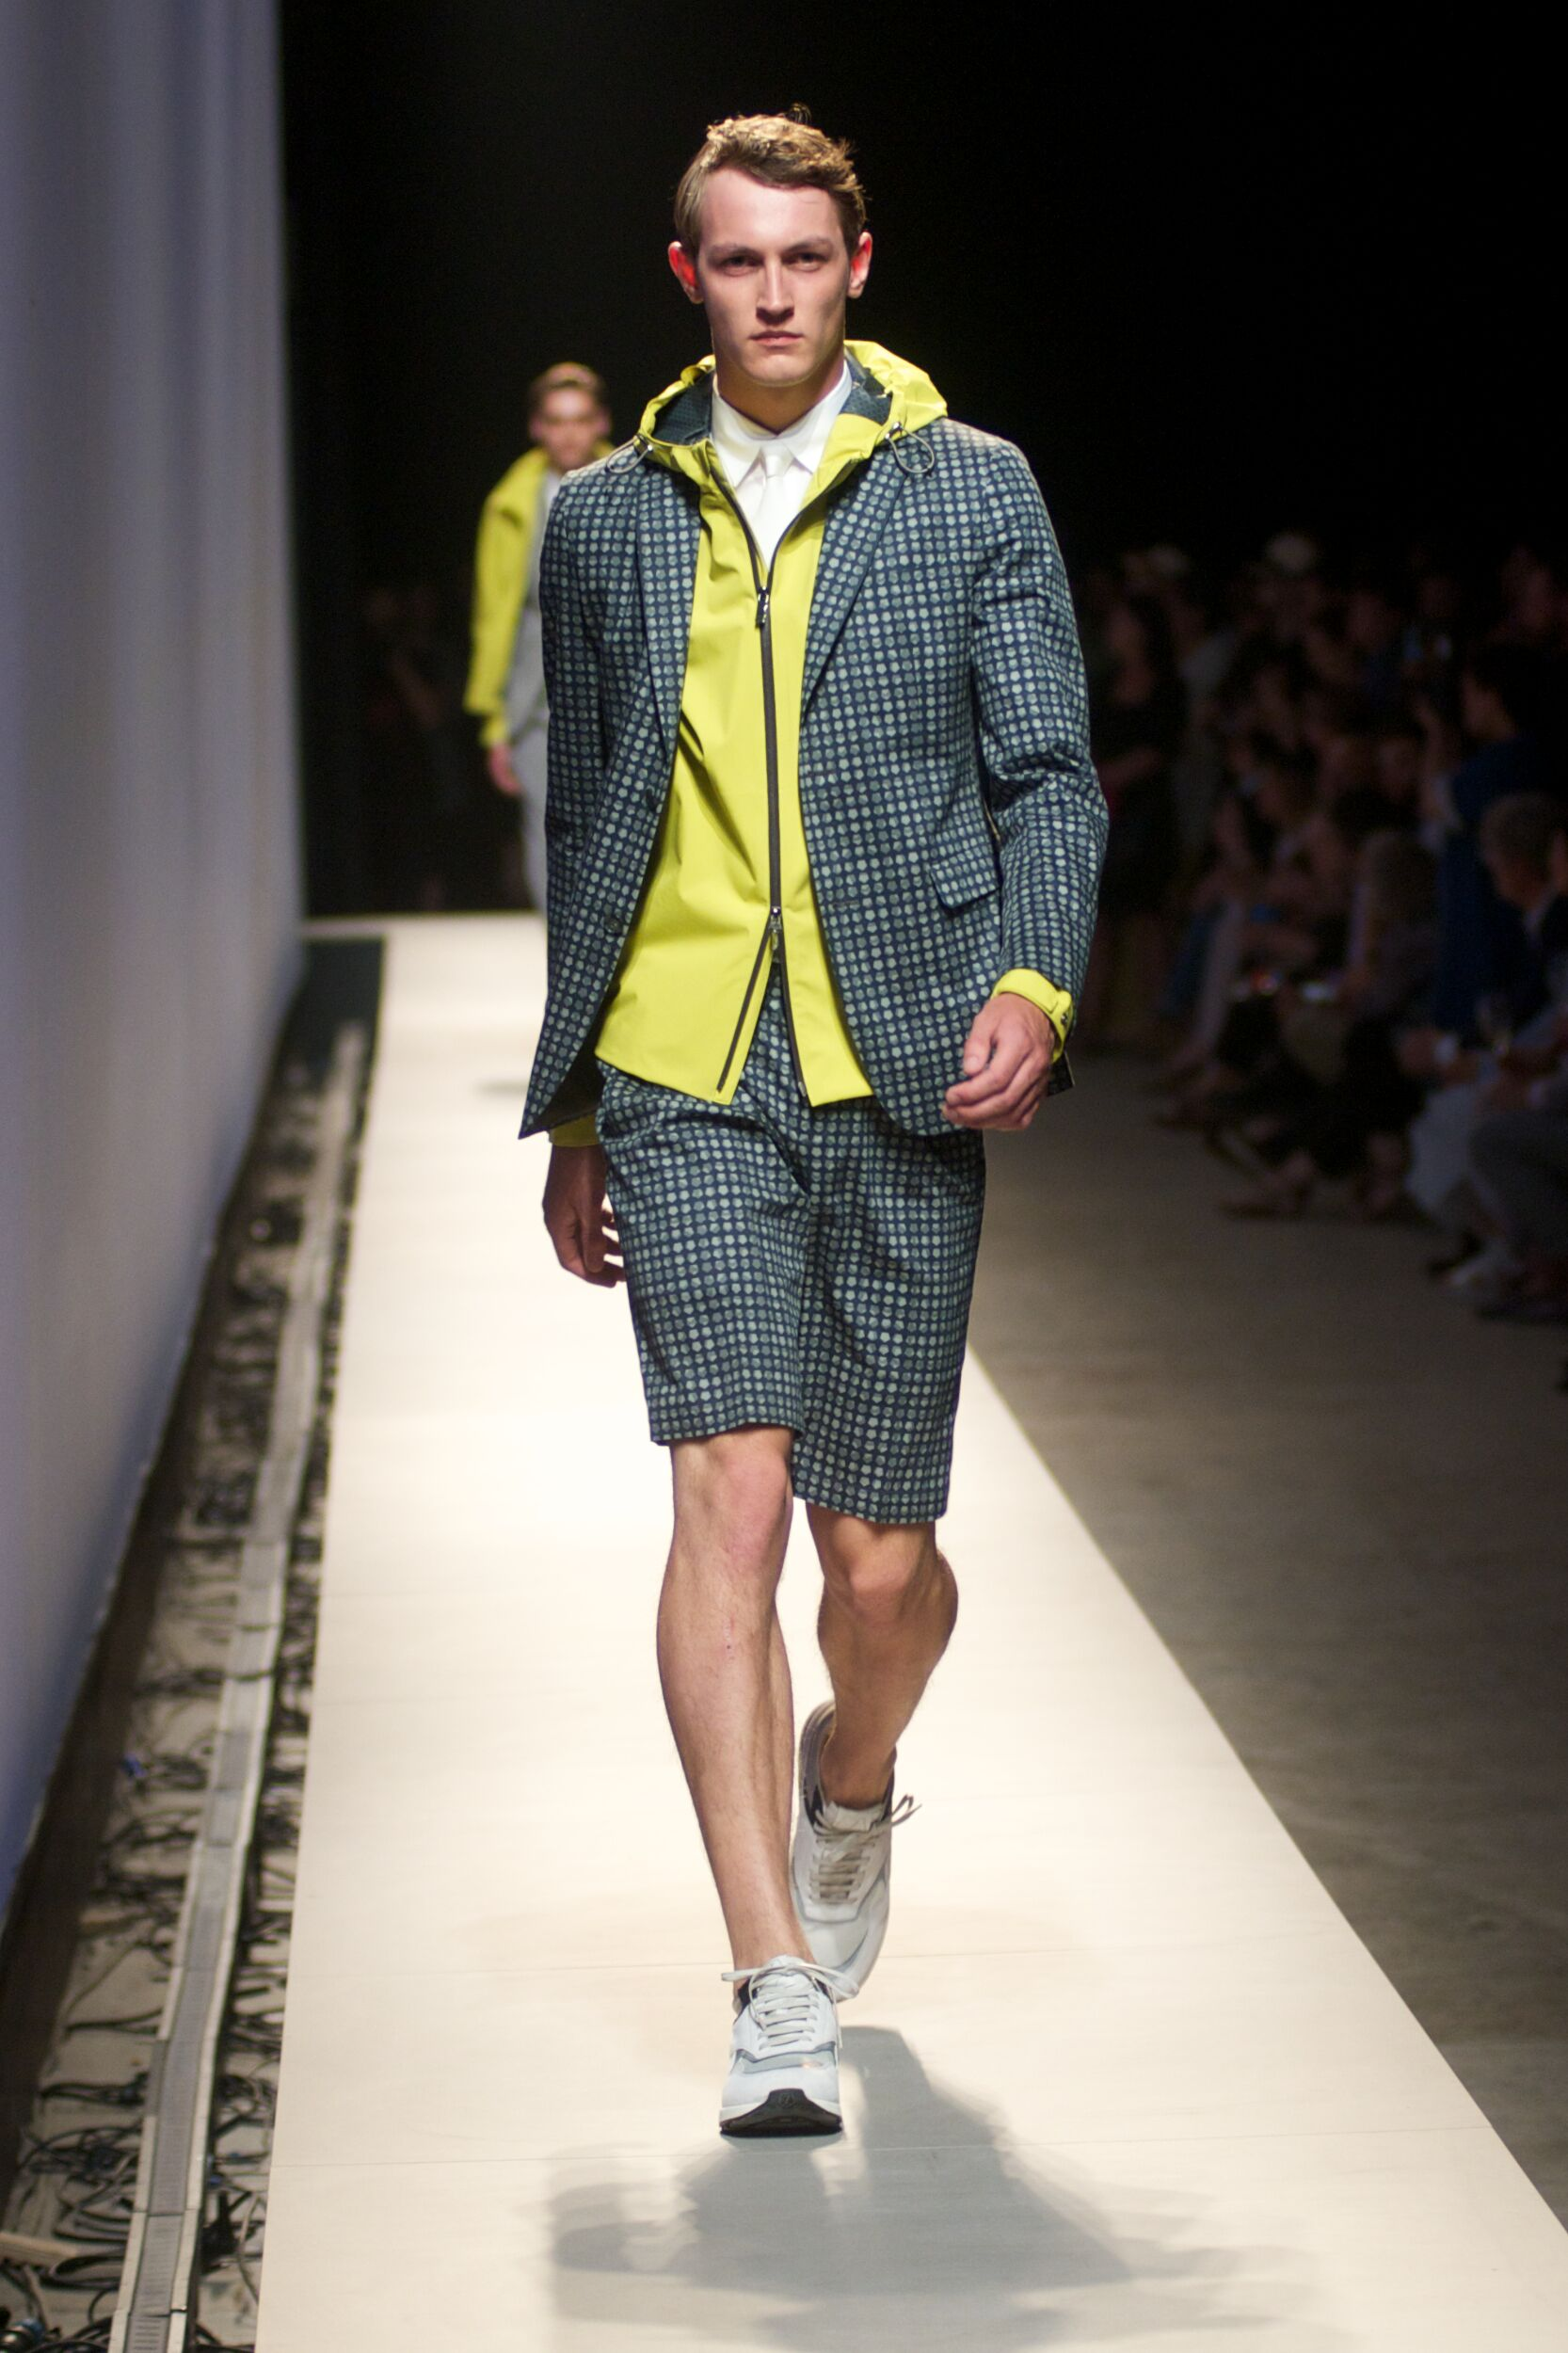 Catwalk Z Zegna Man Fashion Show Summer 2015